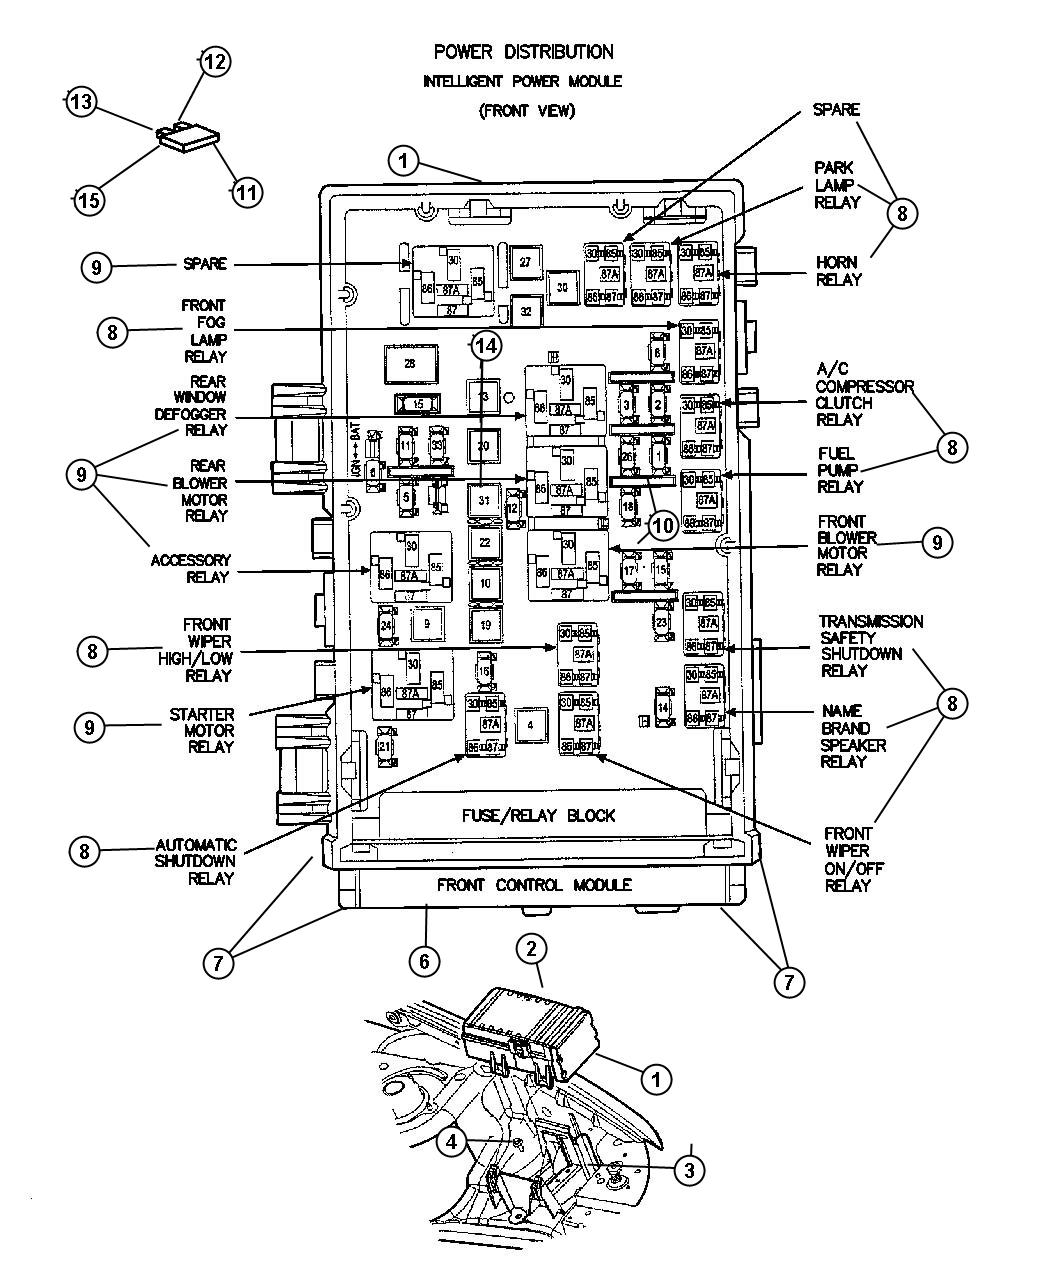 [SCHEMATICS_4NL]  DY_3690] 2002 Chrysler Grand Voyager 2500 Fuse Box Diagram Schematic Wiring | Fuse Box Chrysler Grand Voyager |  | Weasi Pendu Xlexi Egre Hapolo Ical Intap Nuvit Xolia Inama Mohammedshrine  Librar Wiring 101